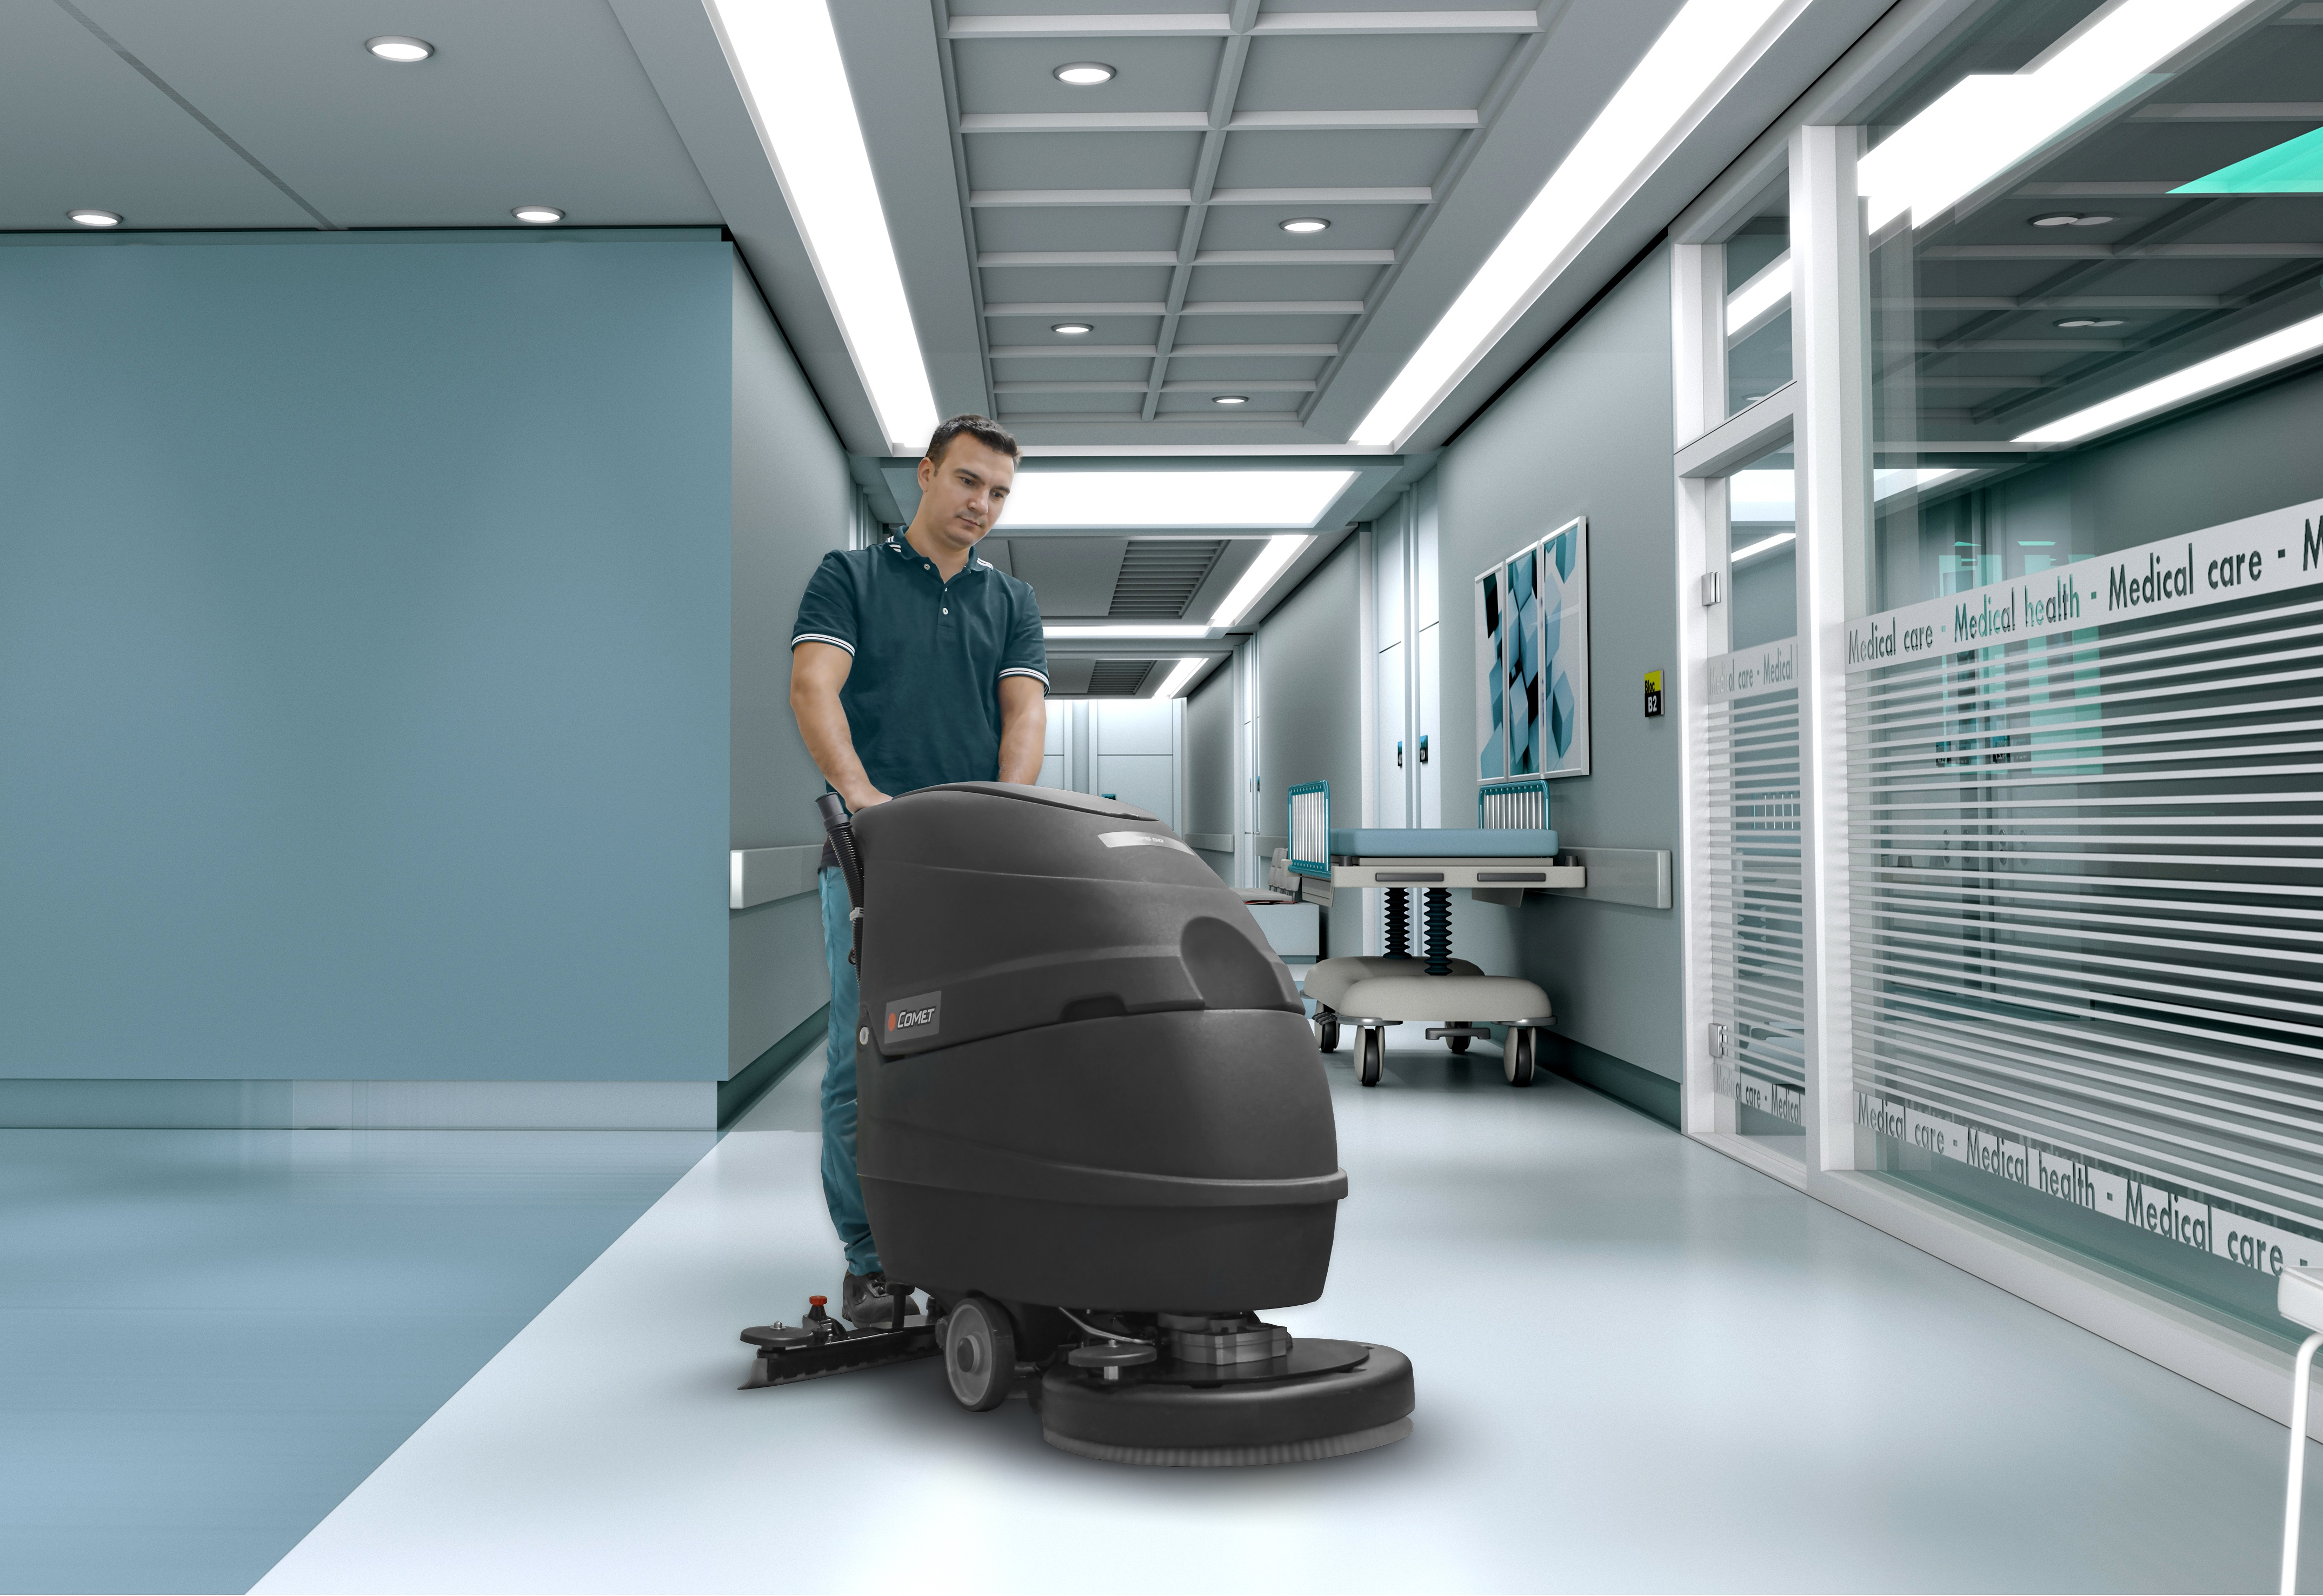 CLEAN AND SANITIZED HOSPITALS AND HEALTHCARE FACILITIES WITH THE FLOOR SCRUBBER DRYER